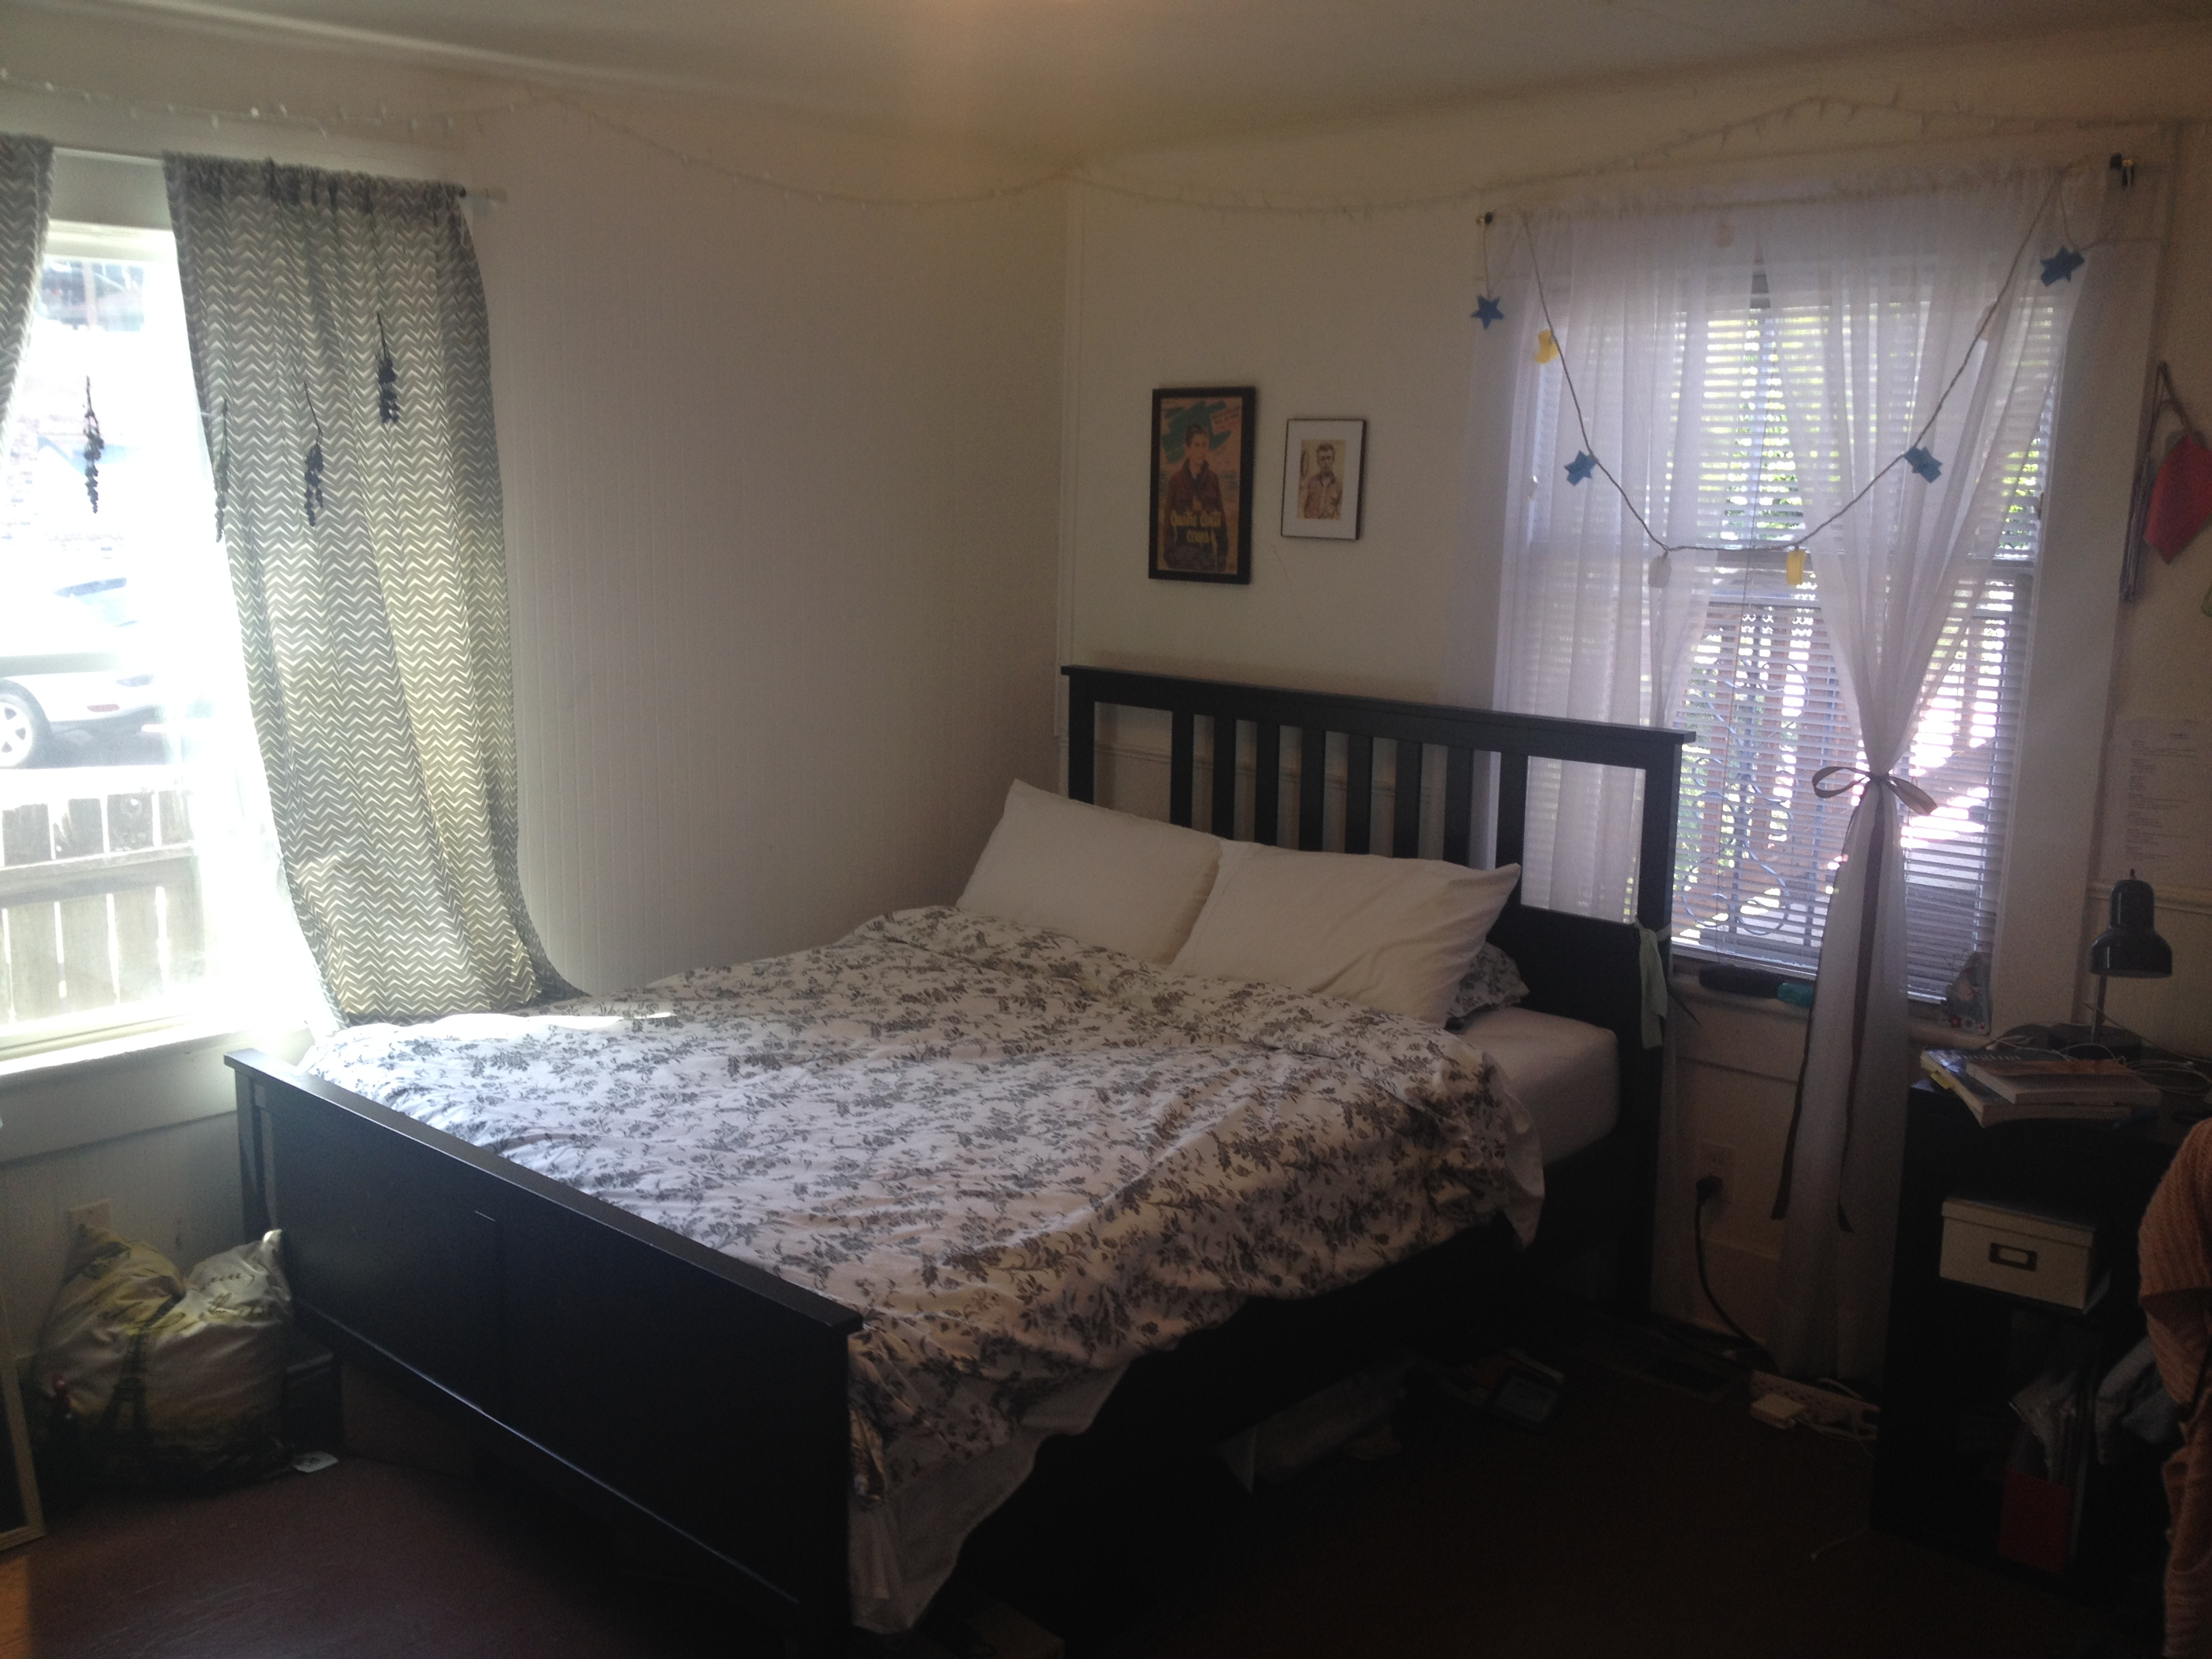 Studio Apartment Eugene Oregon college apartments in eugene | college student apartments